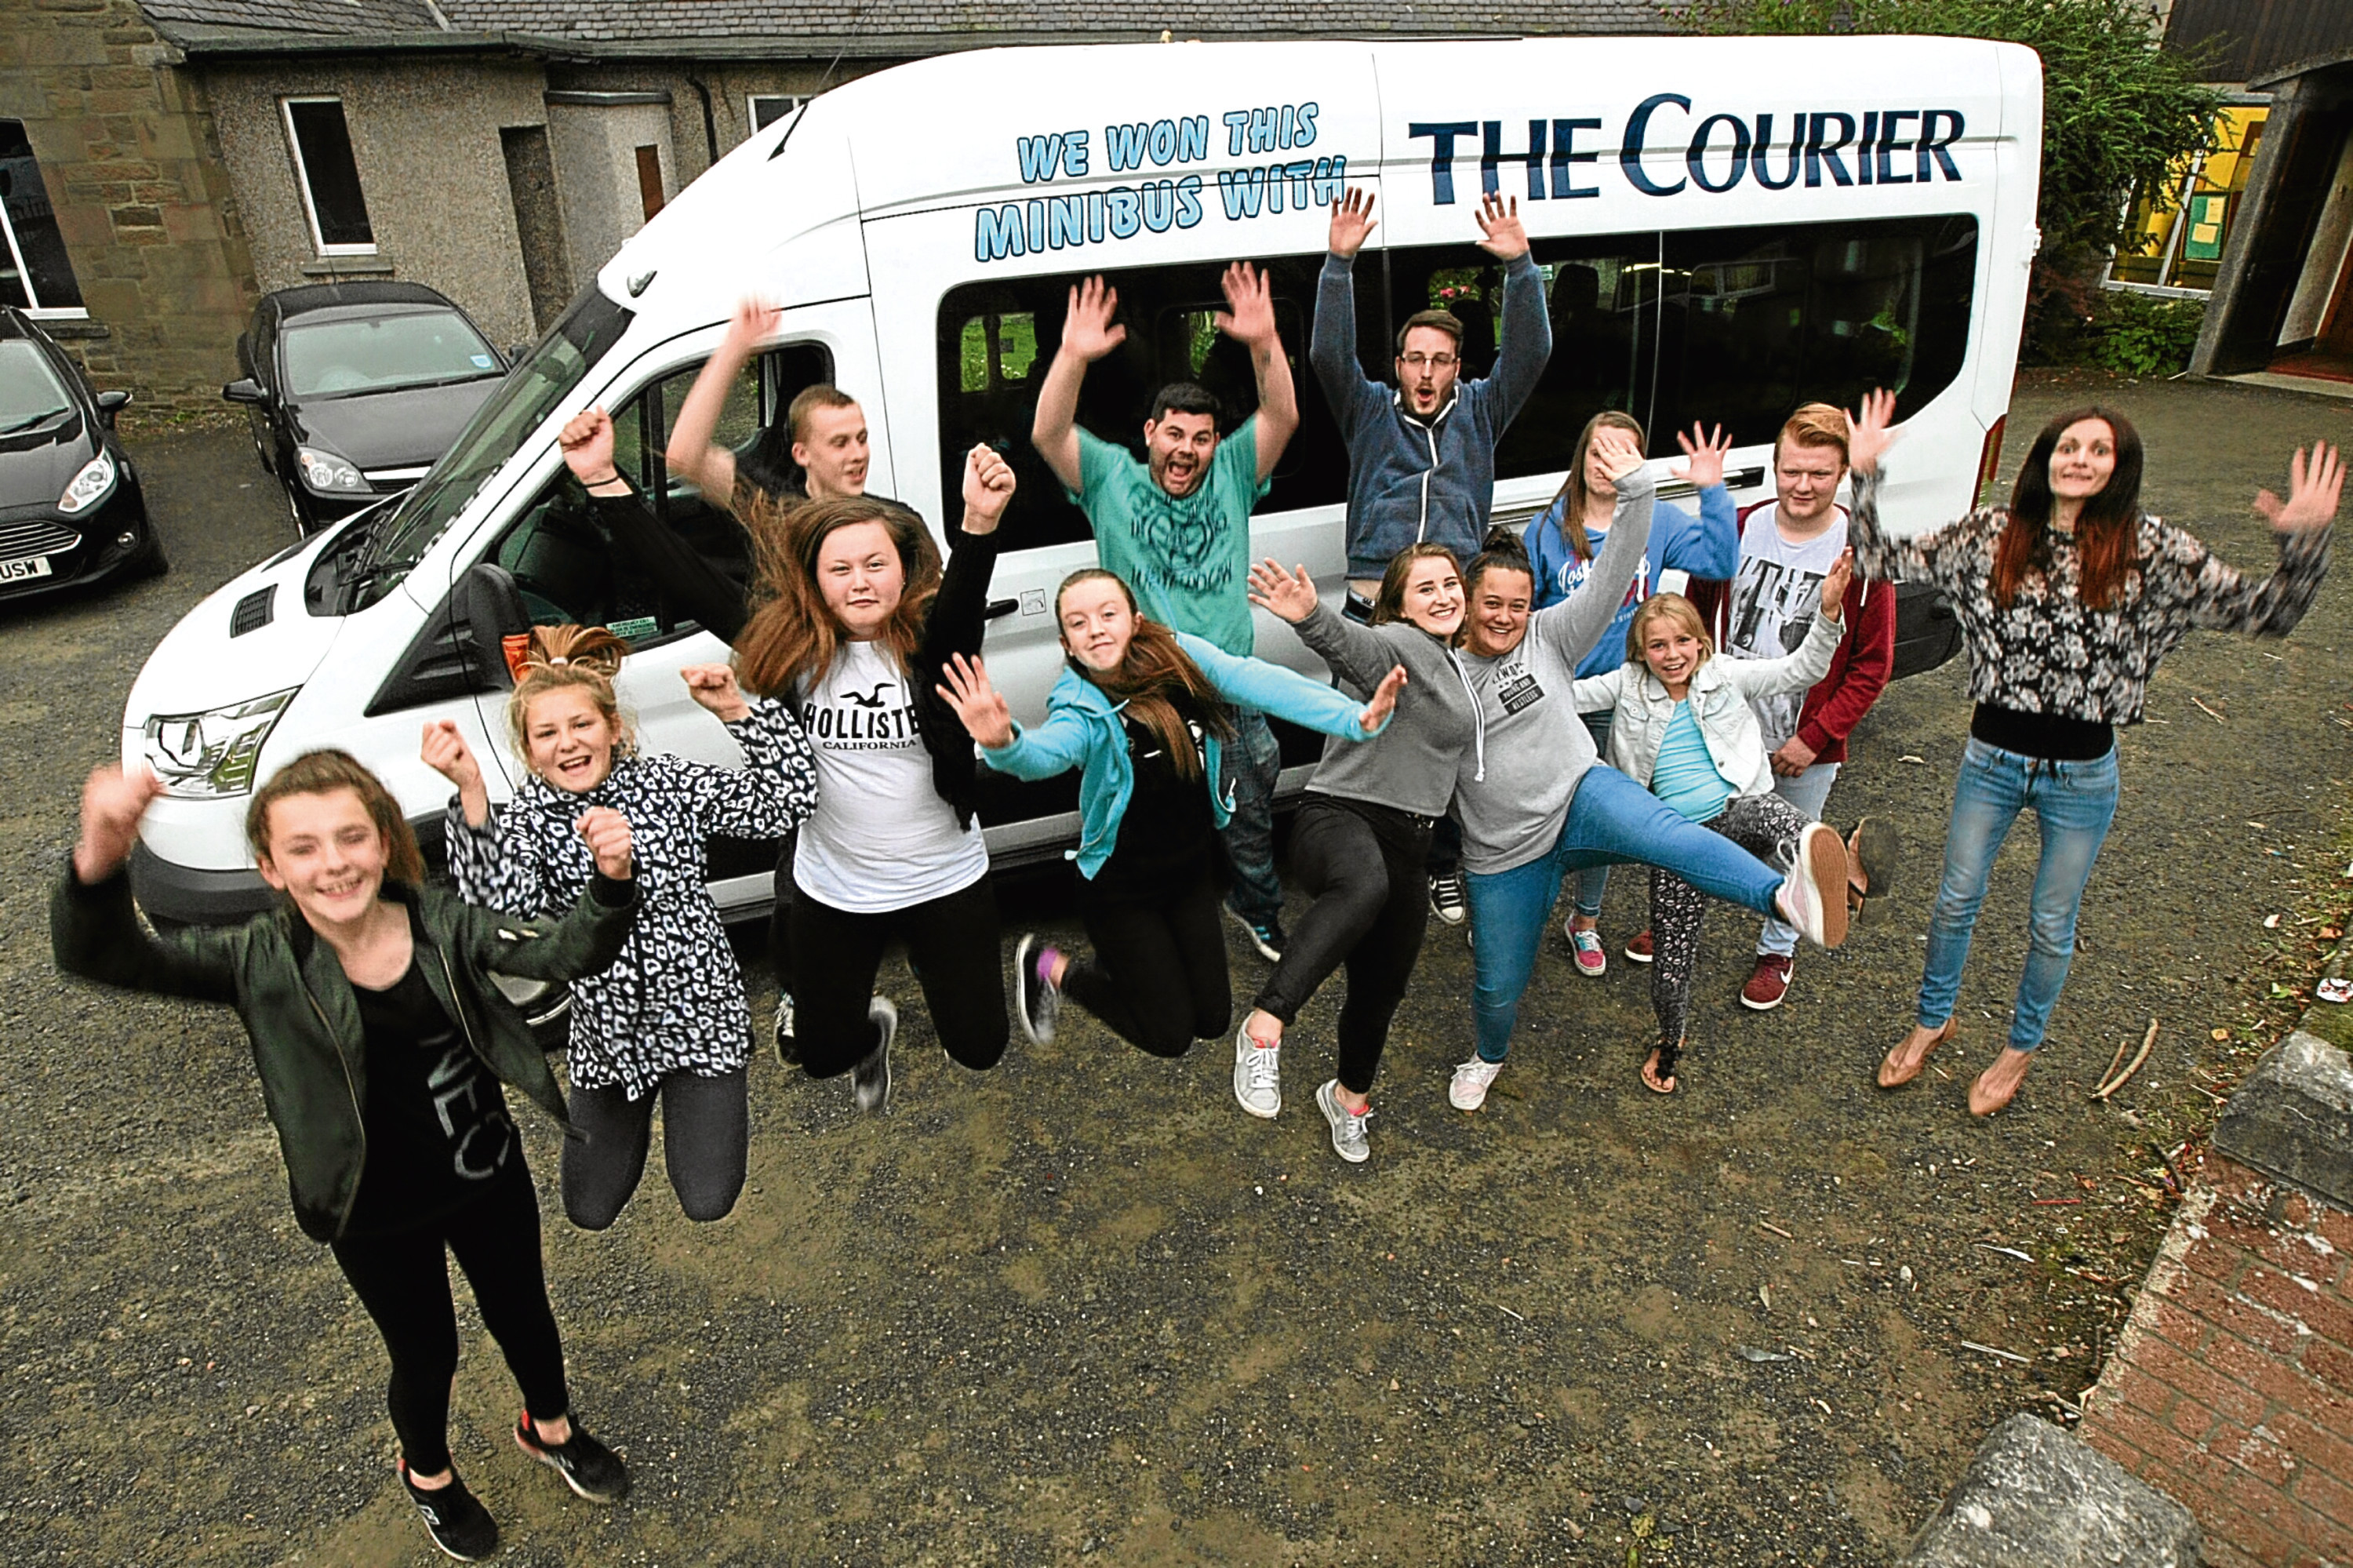 Happy travellers: the RockSolid Youth Project in Douglas with the minibus they won from The Courier.